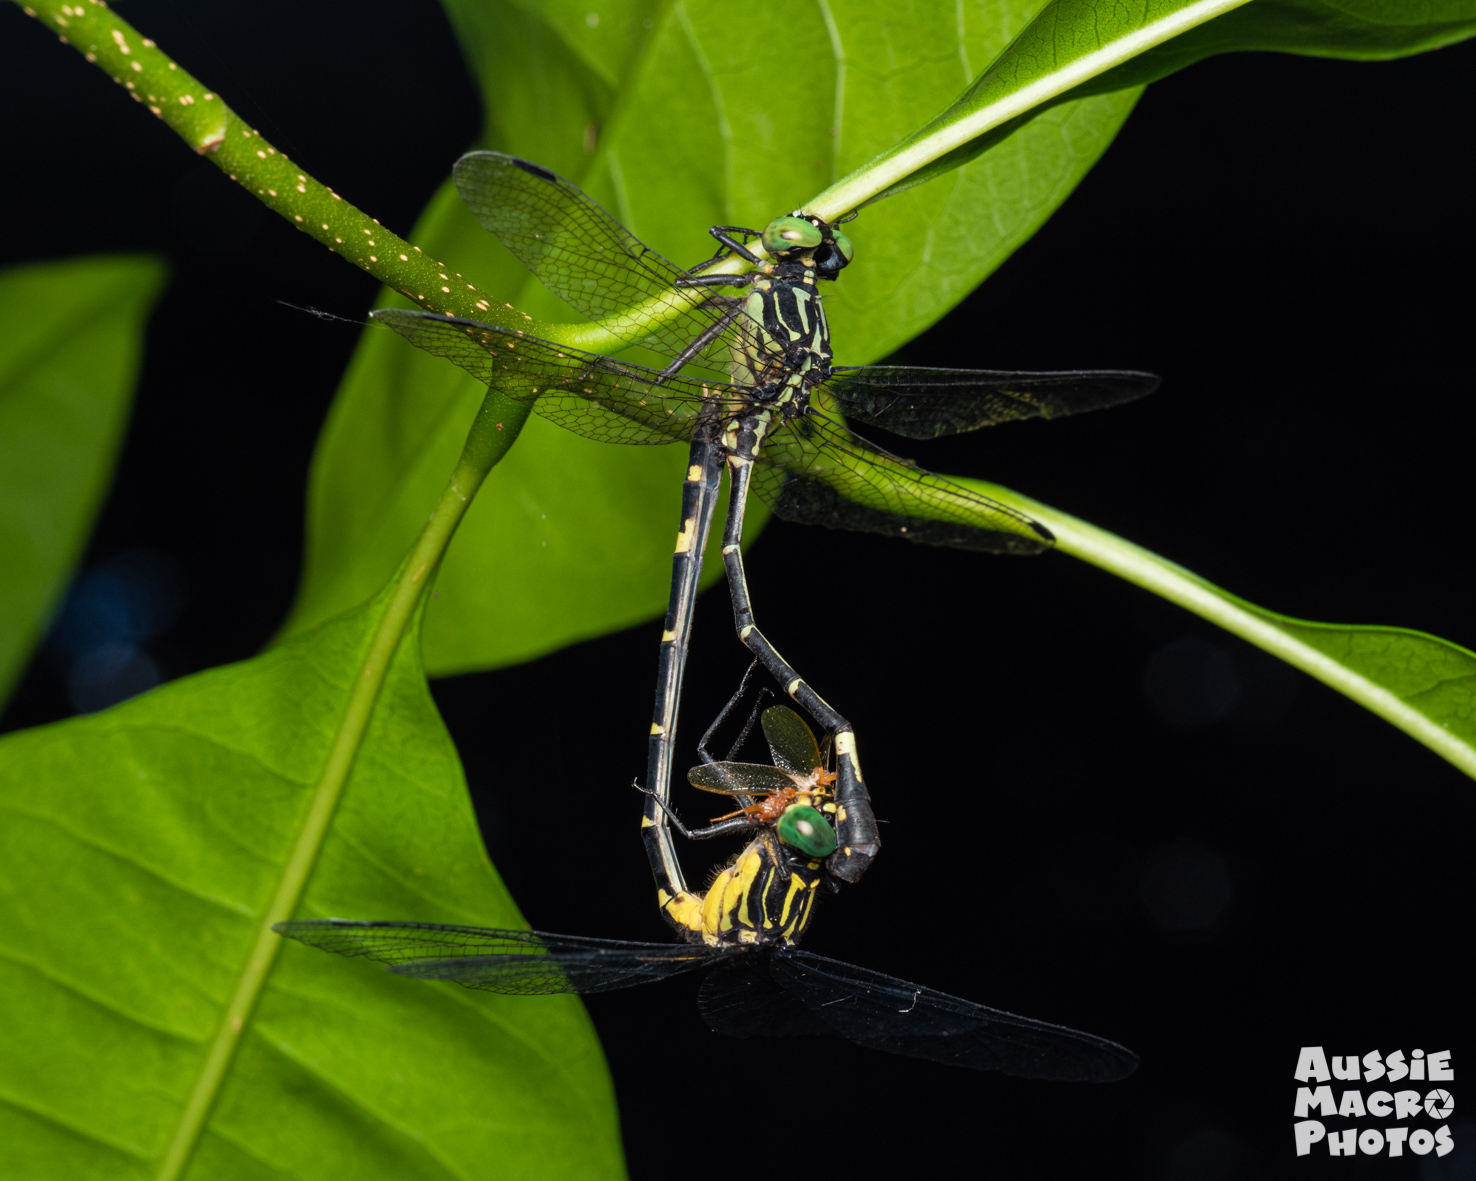 Mating Dragonflies on Let's Go Buggin Tours